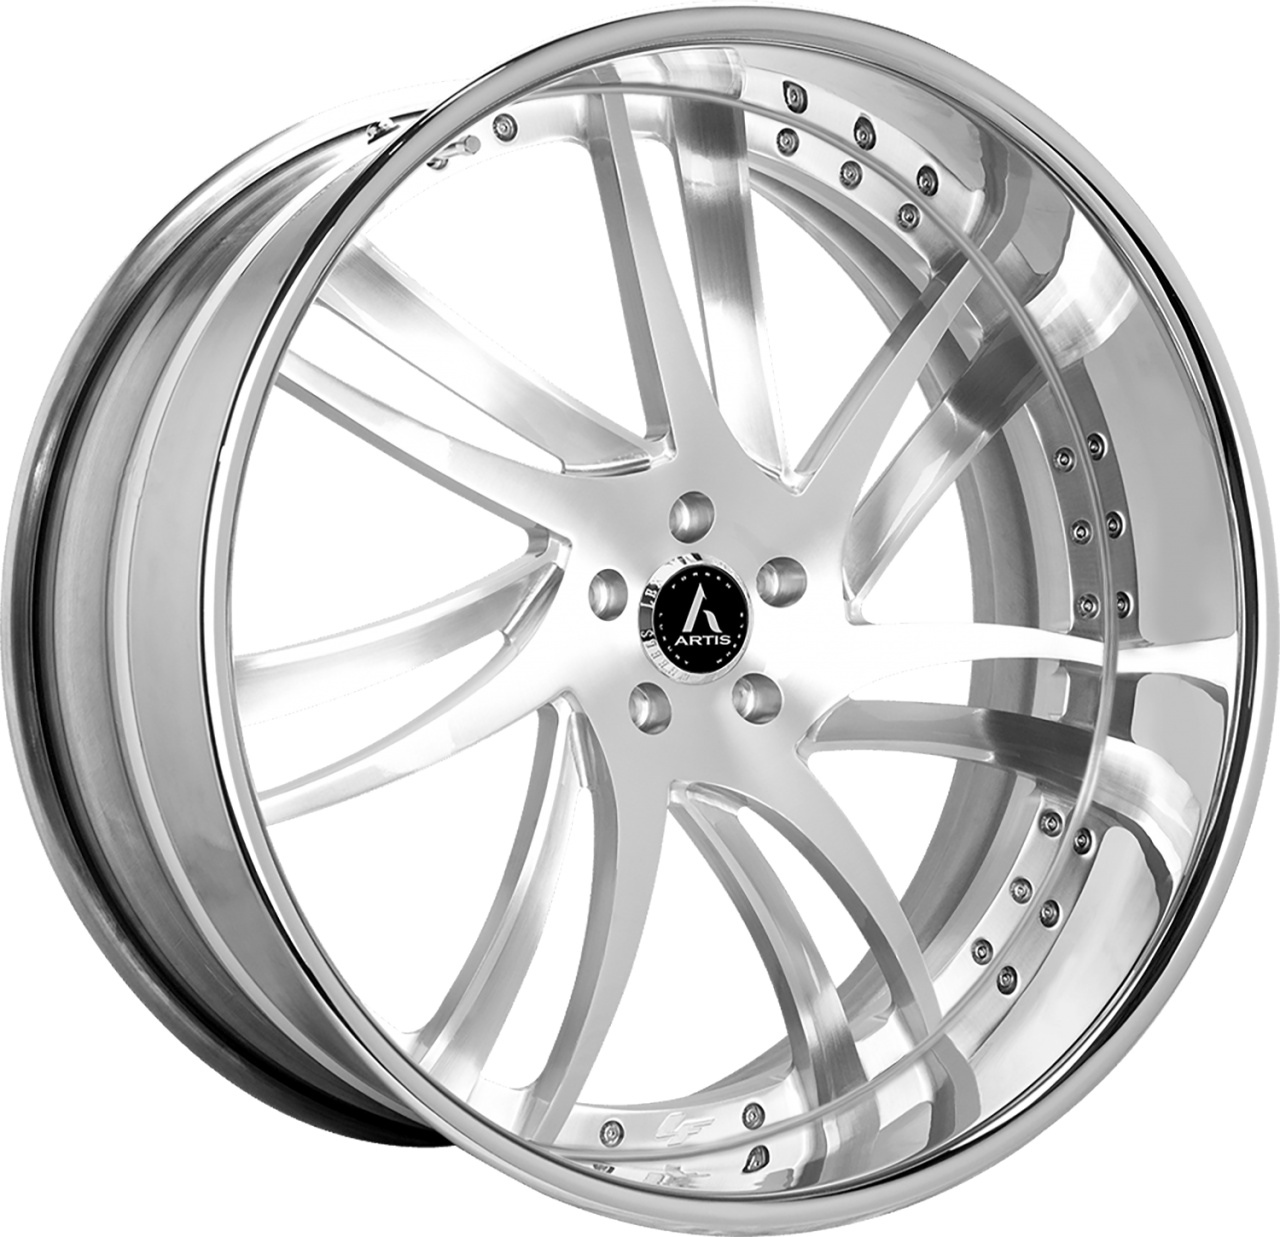 Artis Forged Profile-M wheel with Brushed finish